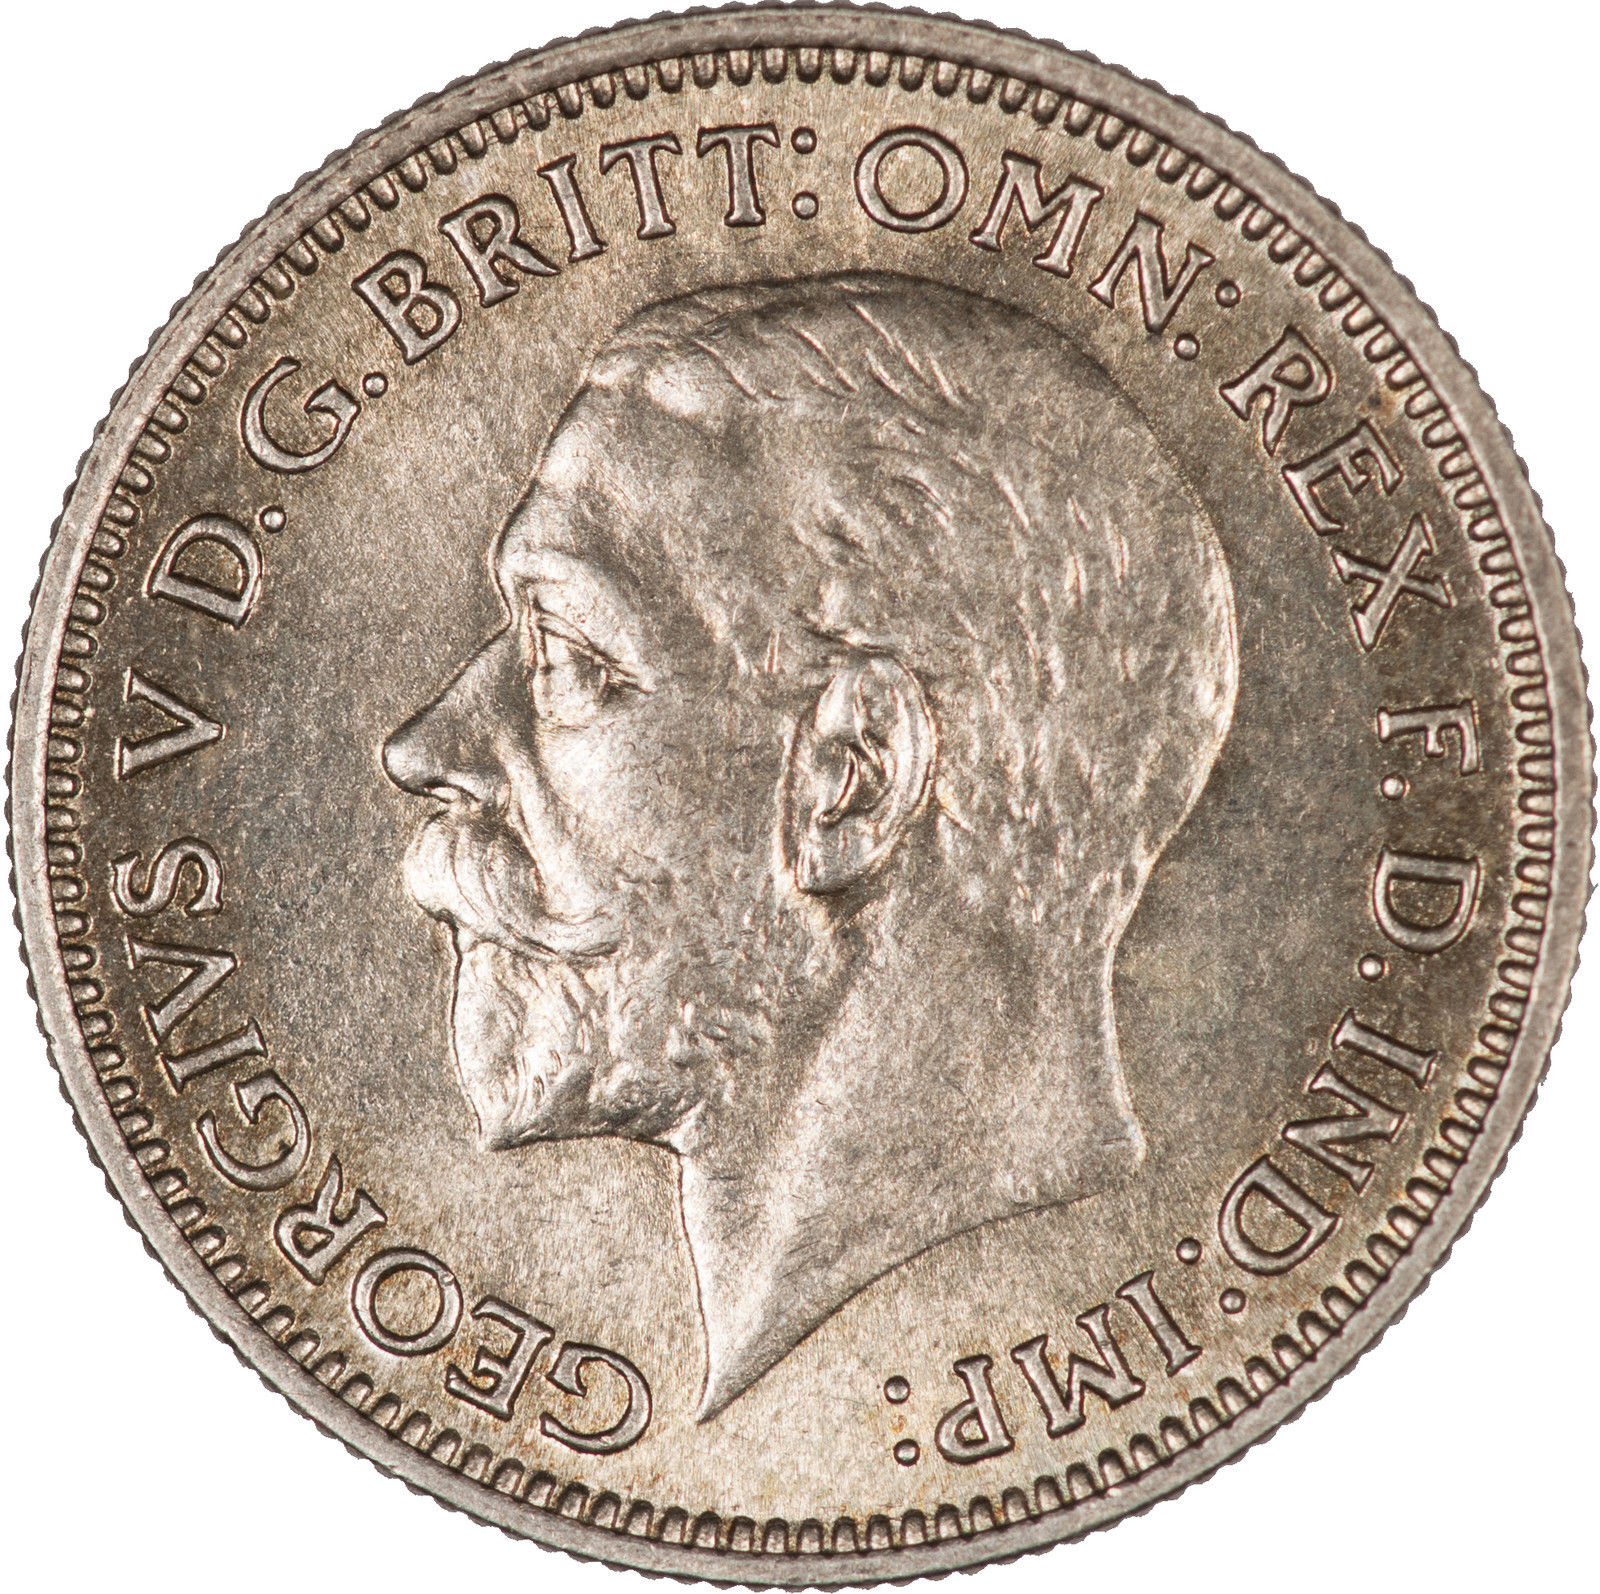 Sixpence 1933: Photo Great Britain 1933 6 Pence